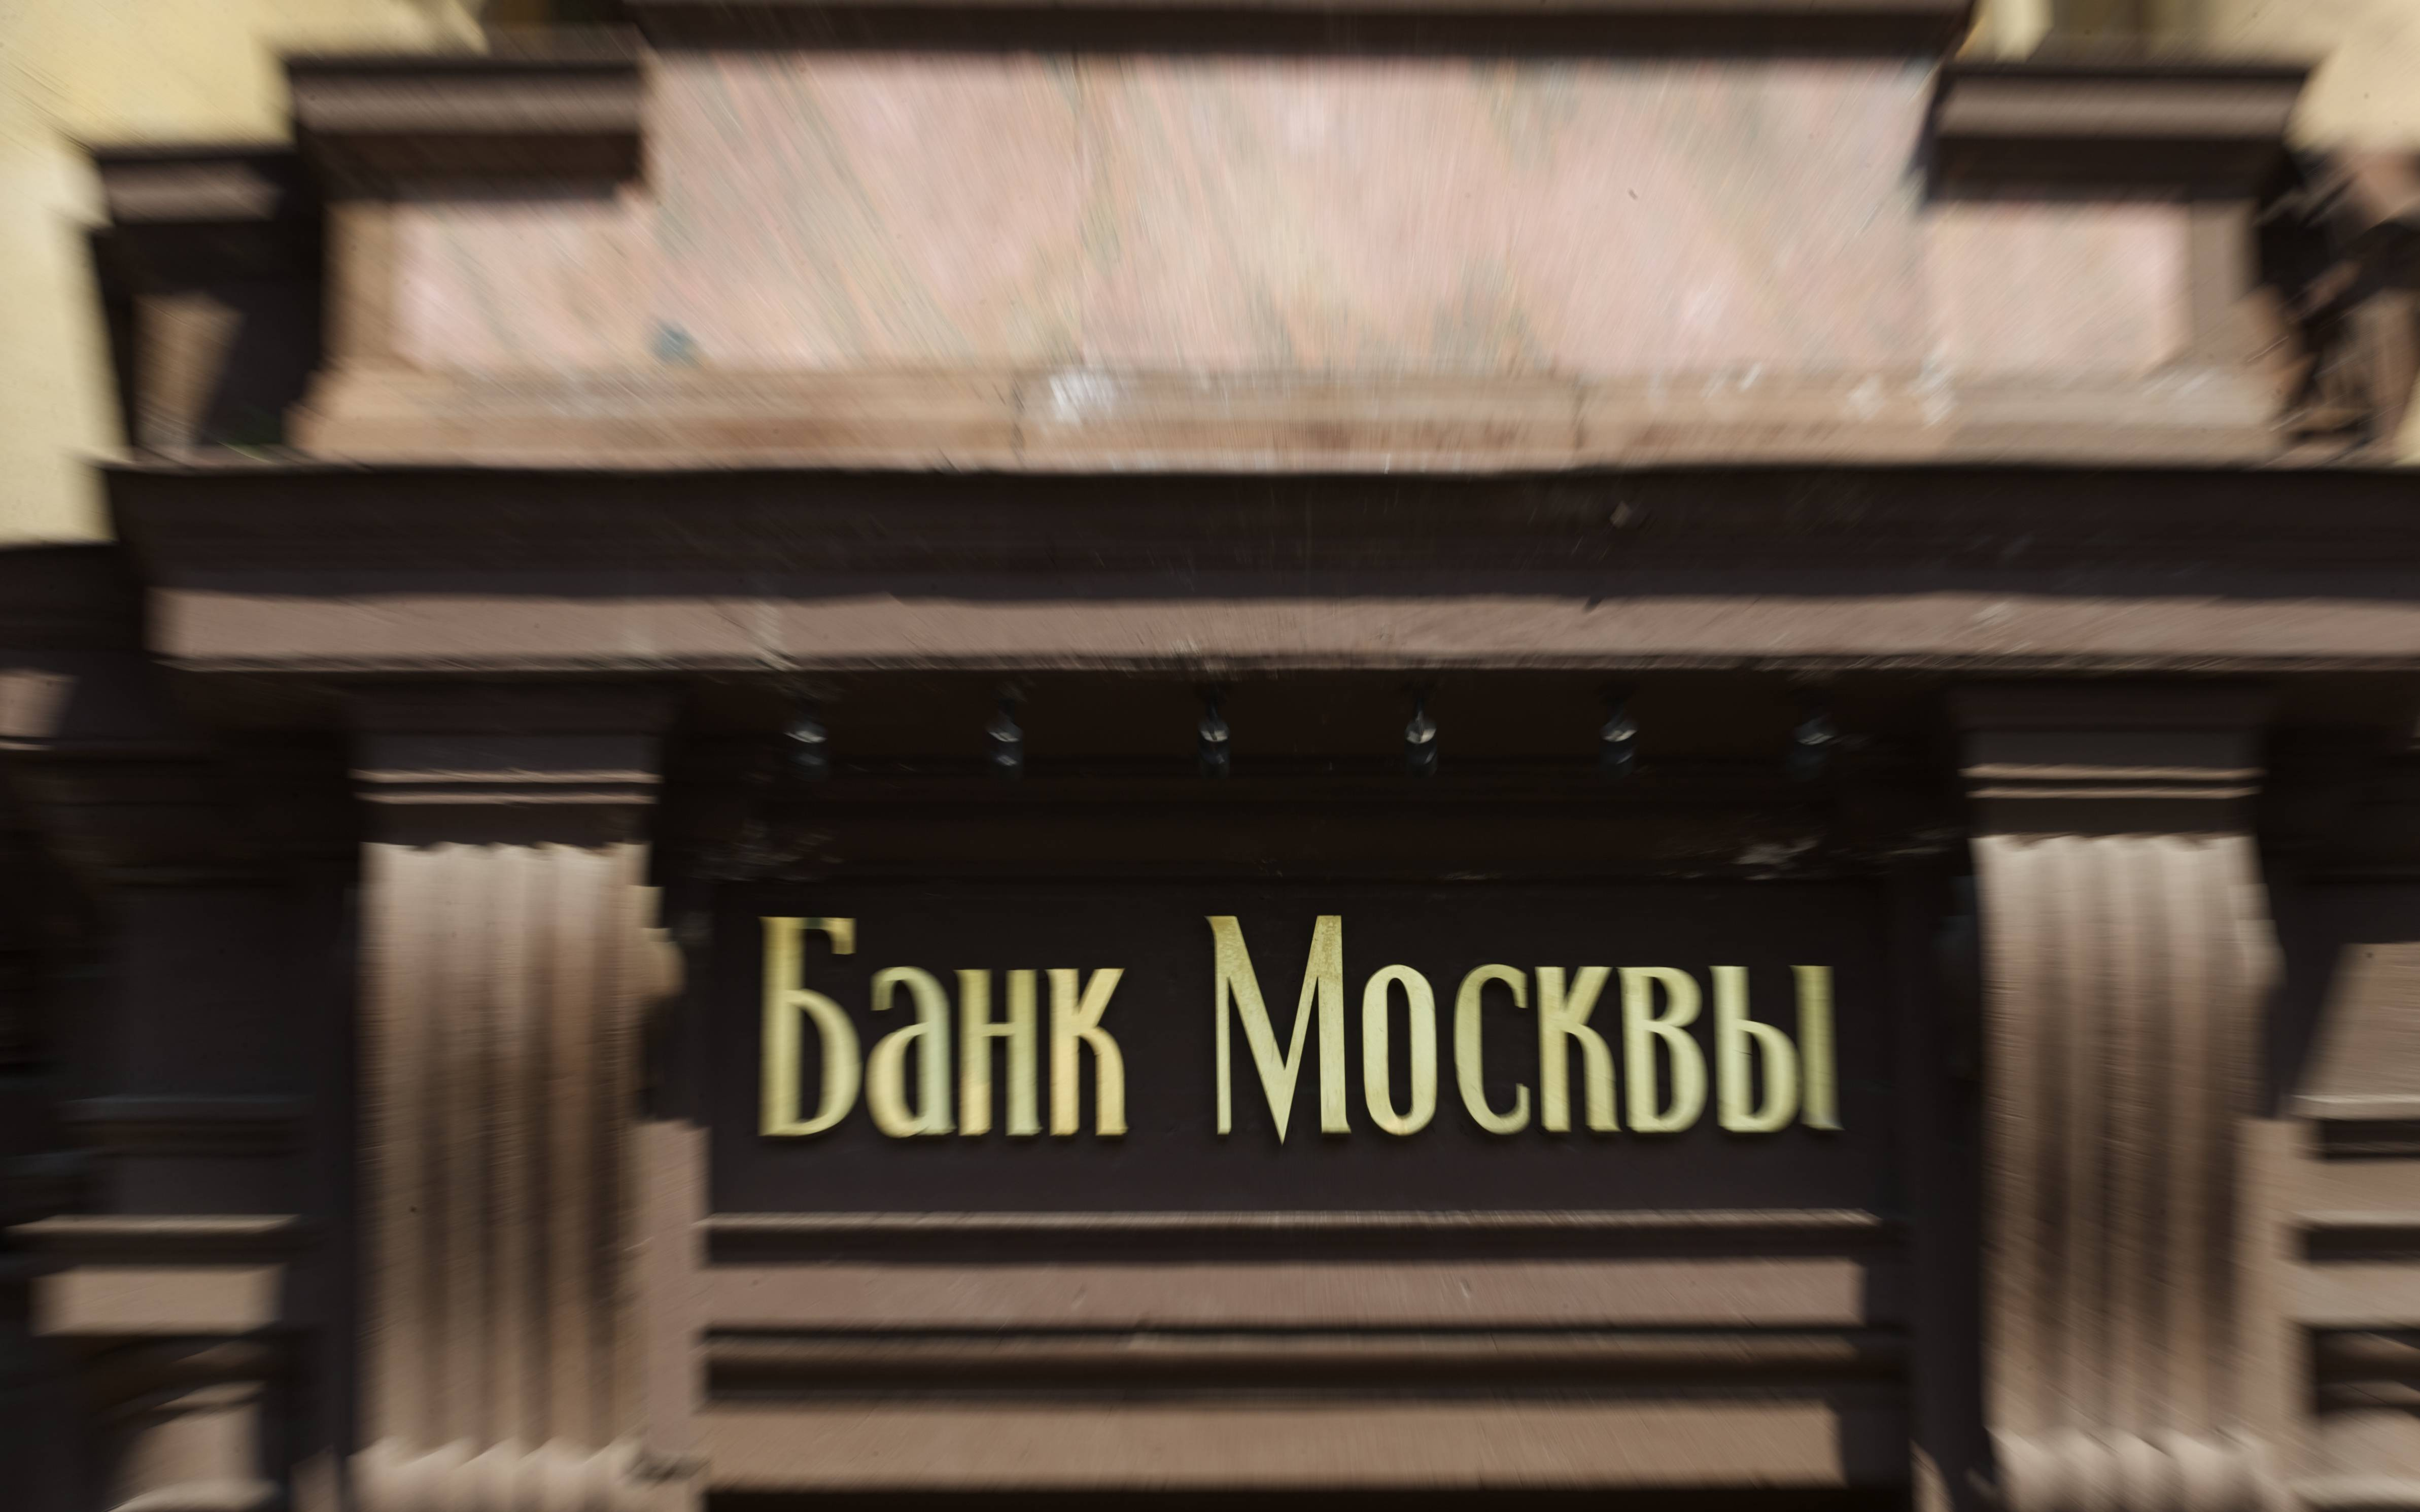 "Sign reading 'Bank of Moscow"" is installed on the headquarters of Russian Agricultural Bank in downtown Moscow, The European Union approved dramatically tougher economic sanctions Tuesday against Russia, followed swiftly by a new round of U.S. penalties. Among the targets were three Russian banks: the Bank of Moscow, Russian Agricultural Bank and VTB Bank, Russia's second largest bank."